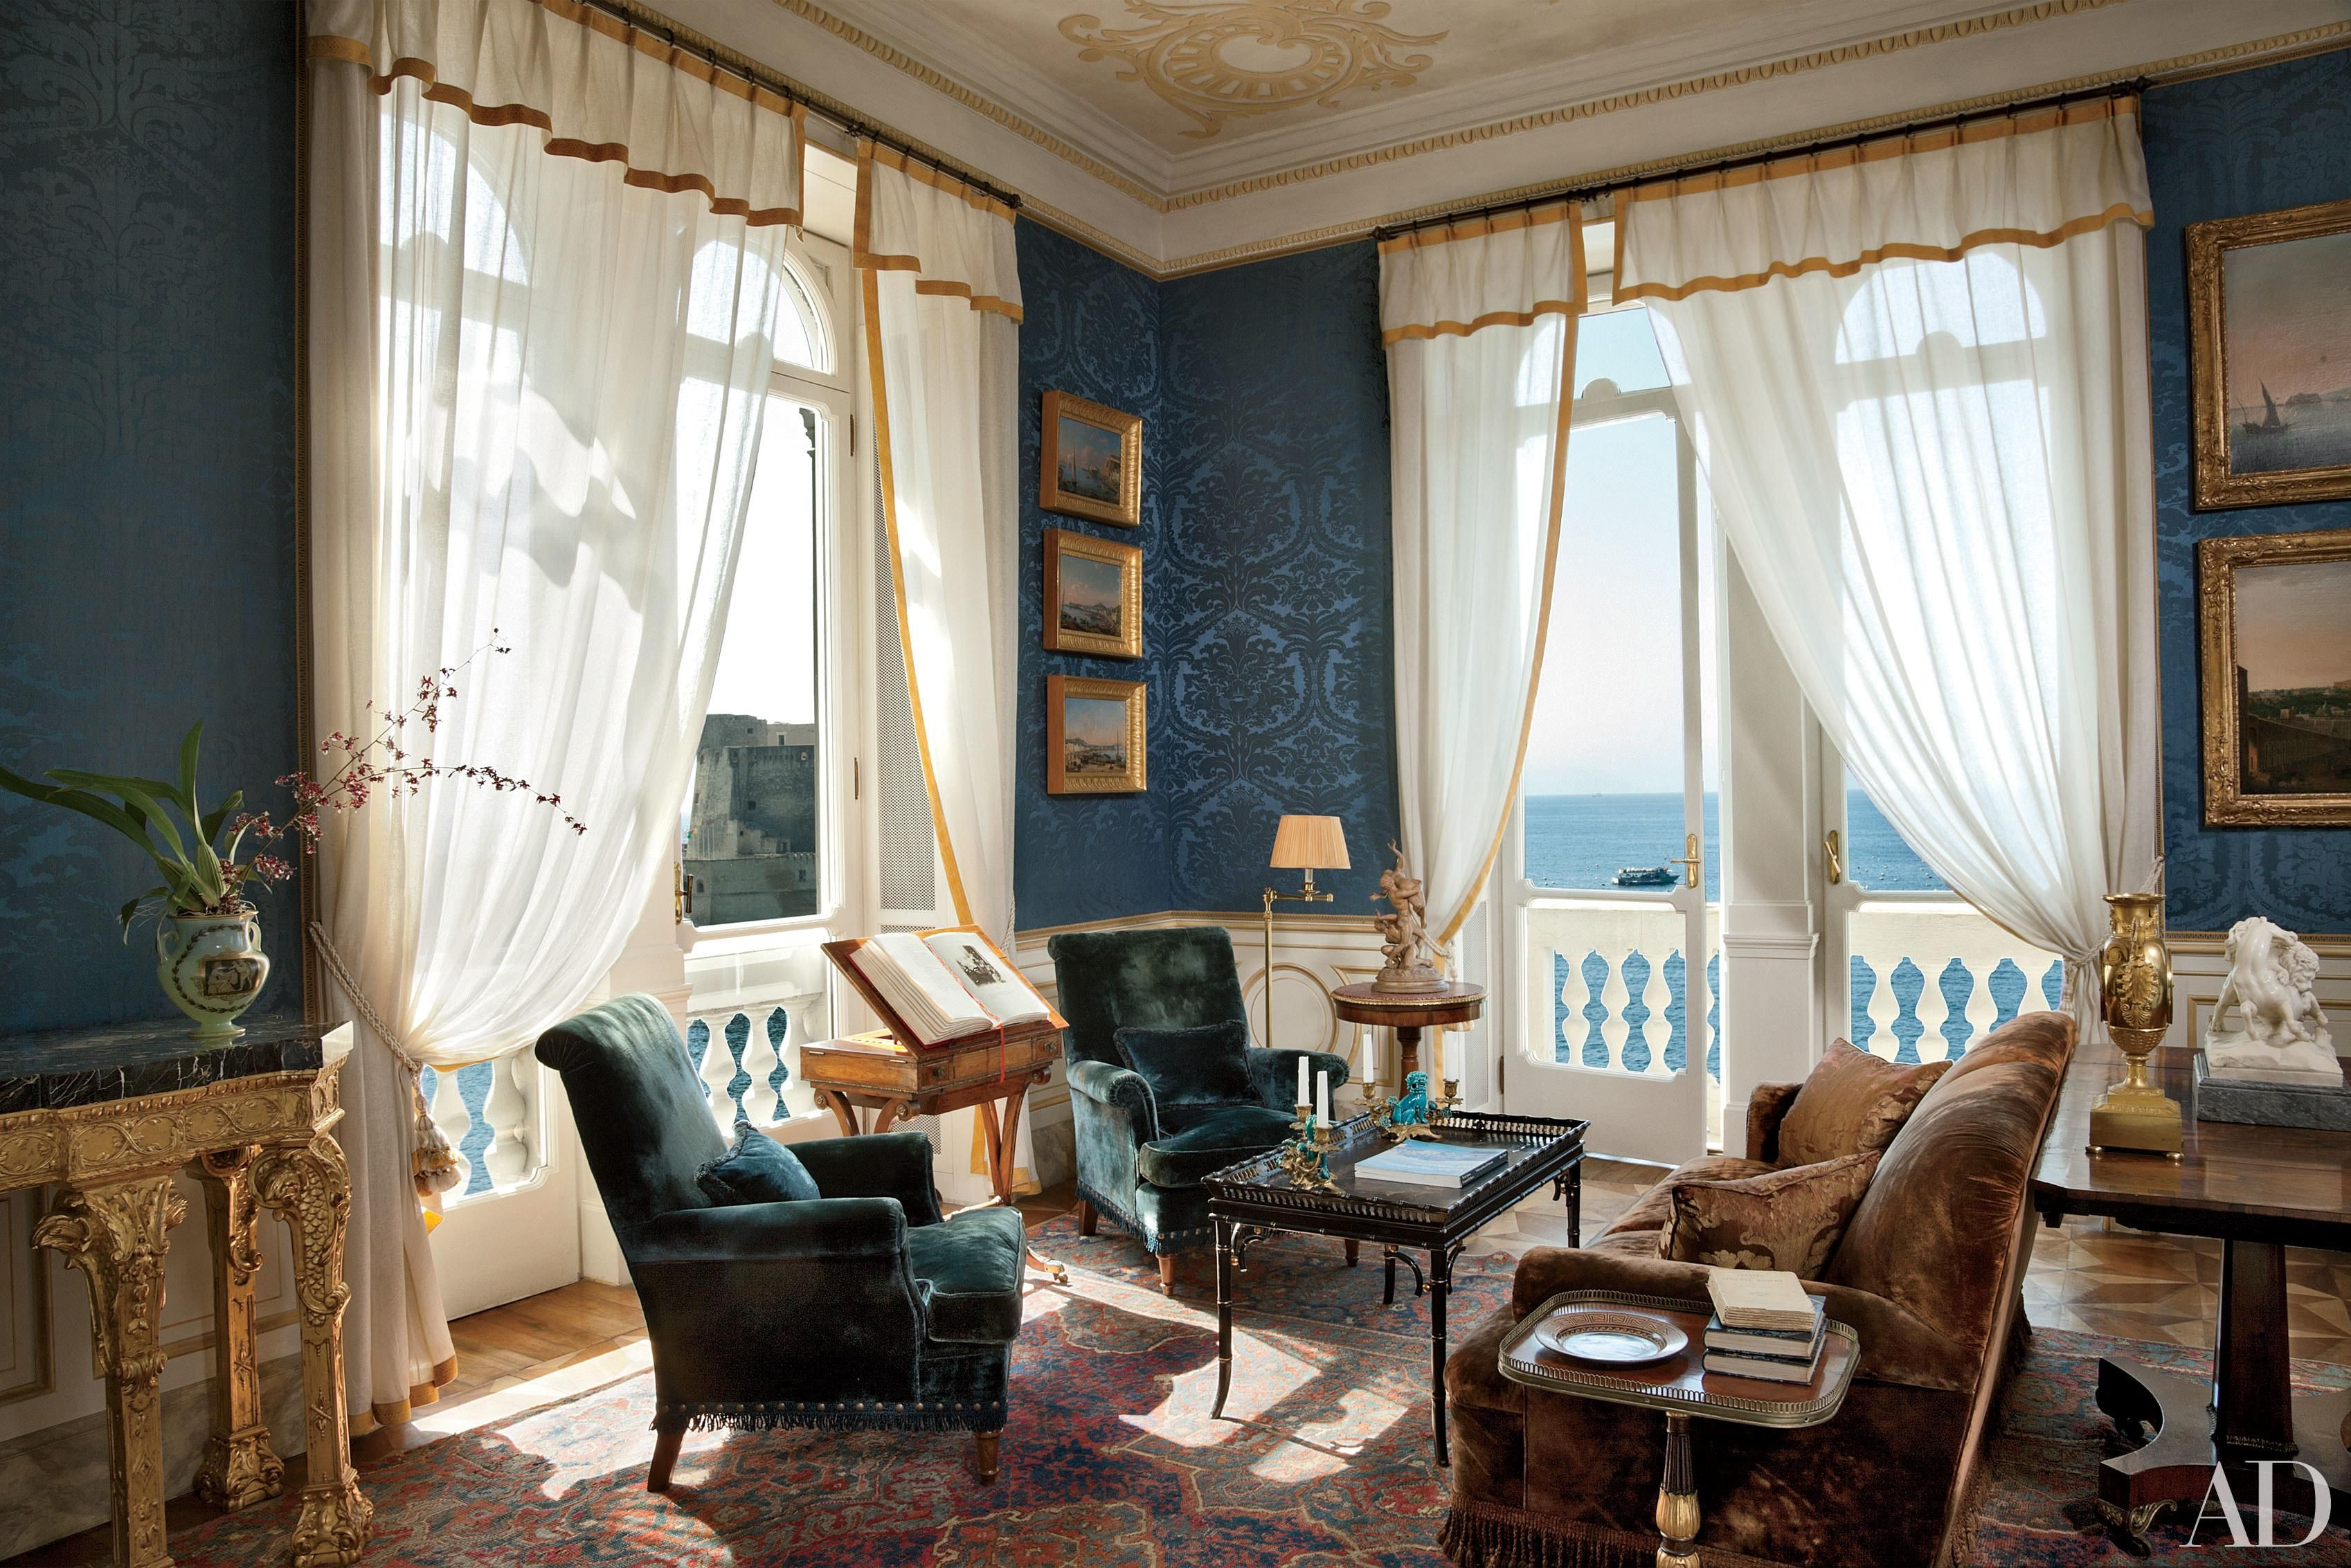 Step Inside These 19 Magnificent Rooms in